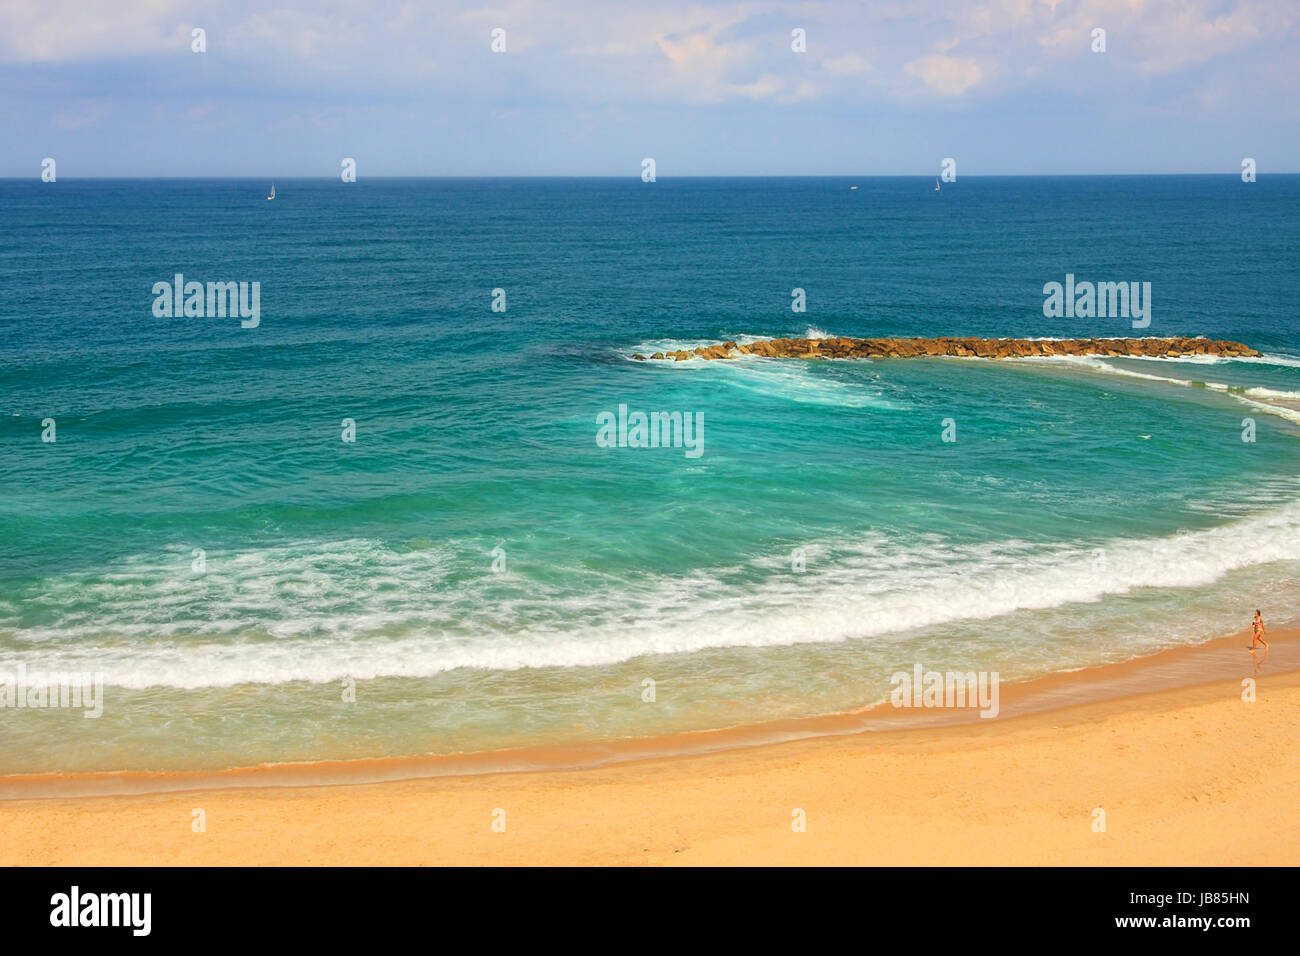 View from above on sandy beach along beautiful Mediterranean sea at hot day in Israel. - Stock Image